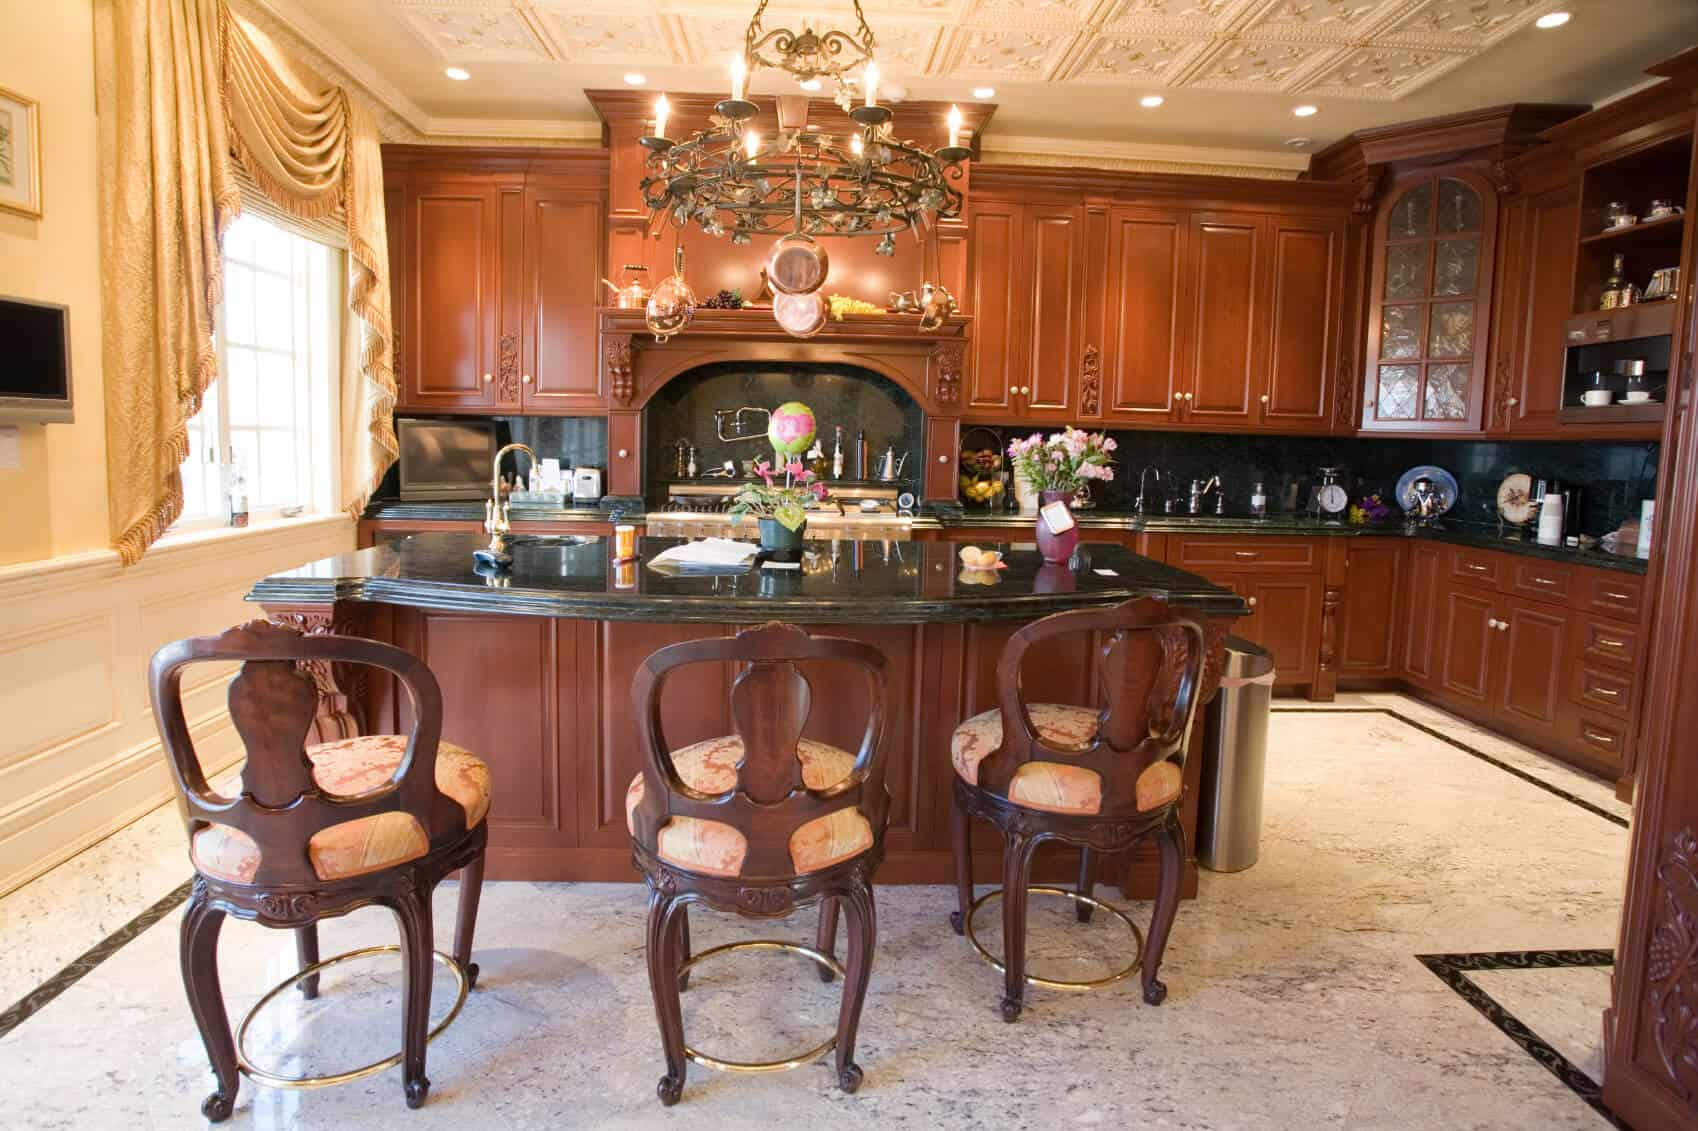 This dark wood kitchen features matching large island with black marble countertop, complete with second sink and ornate dining chairs.